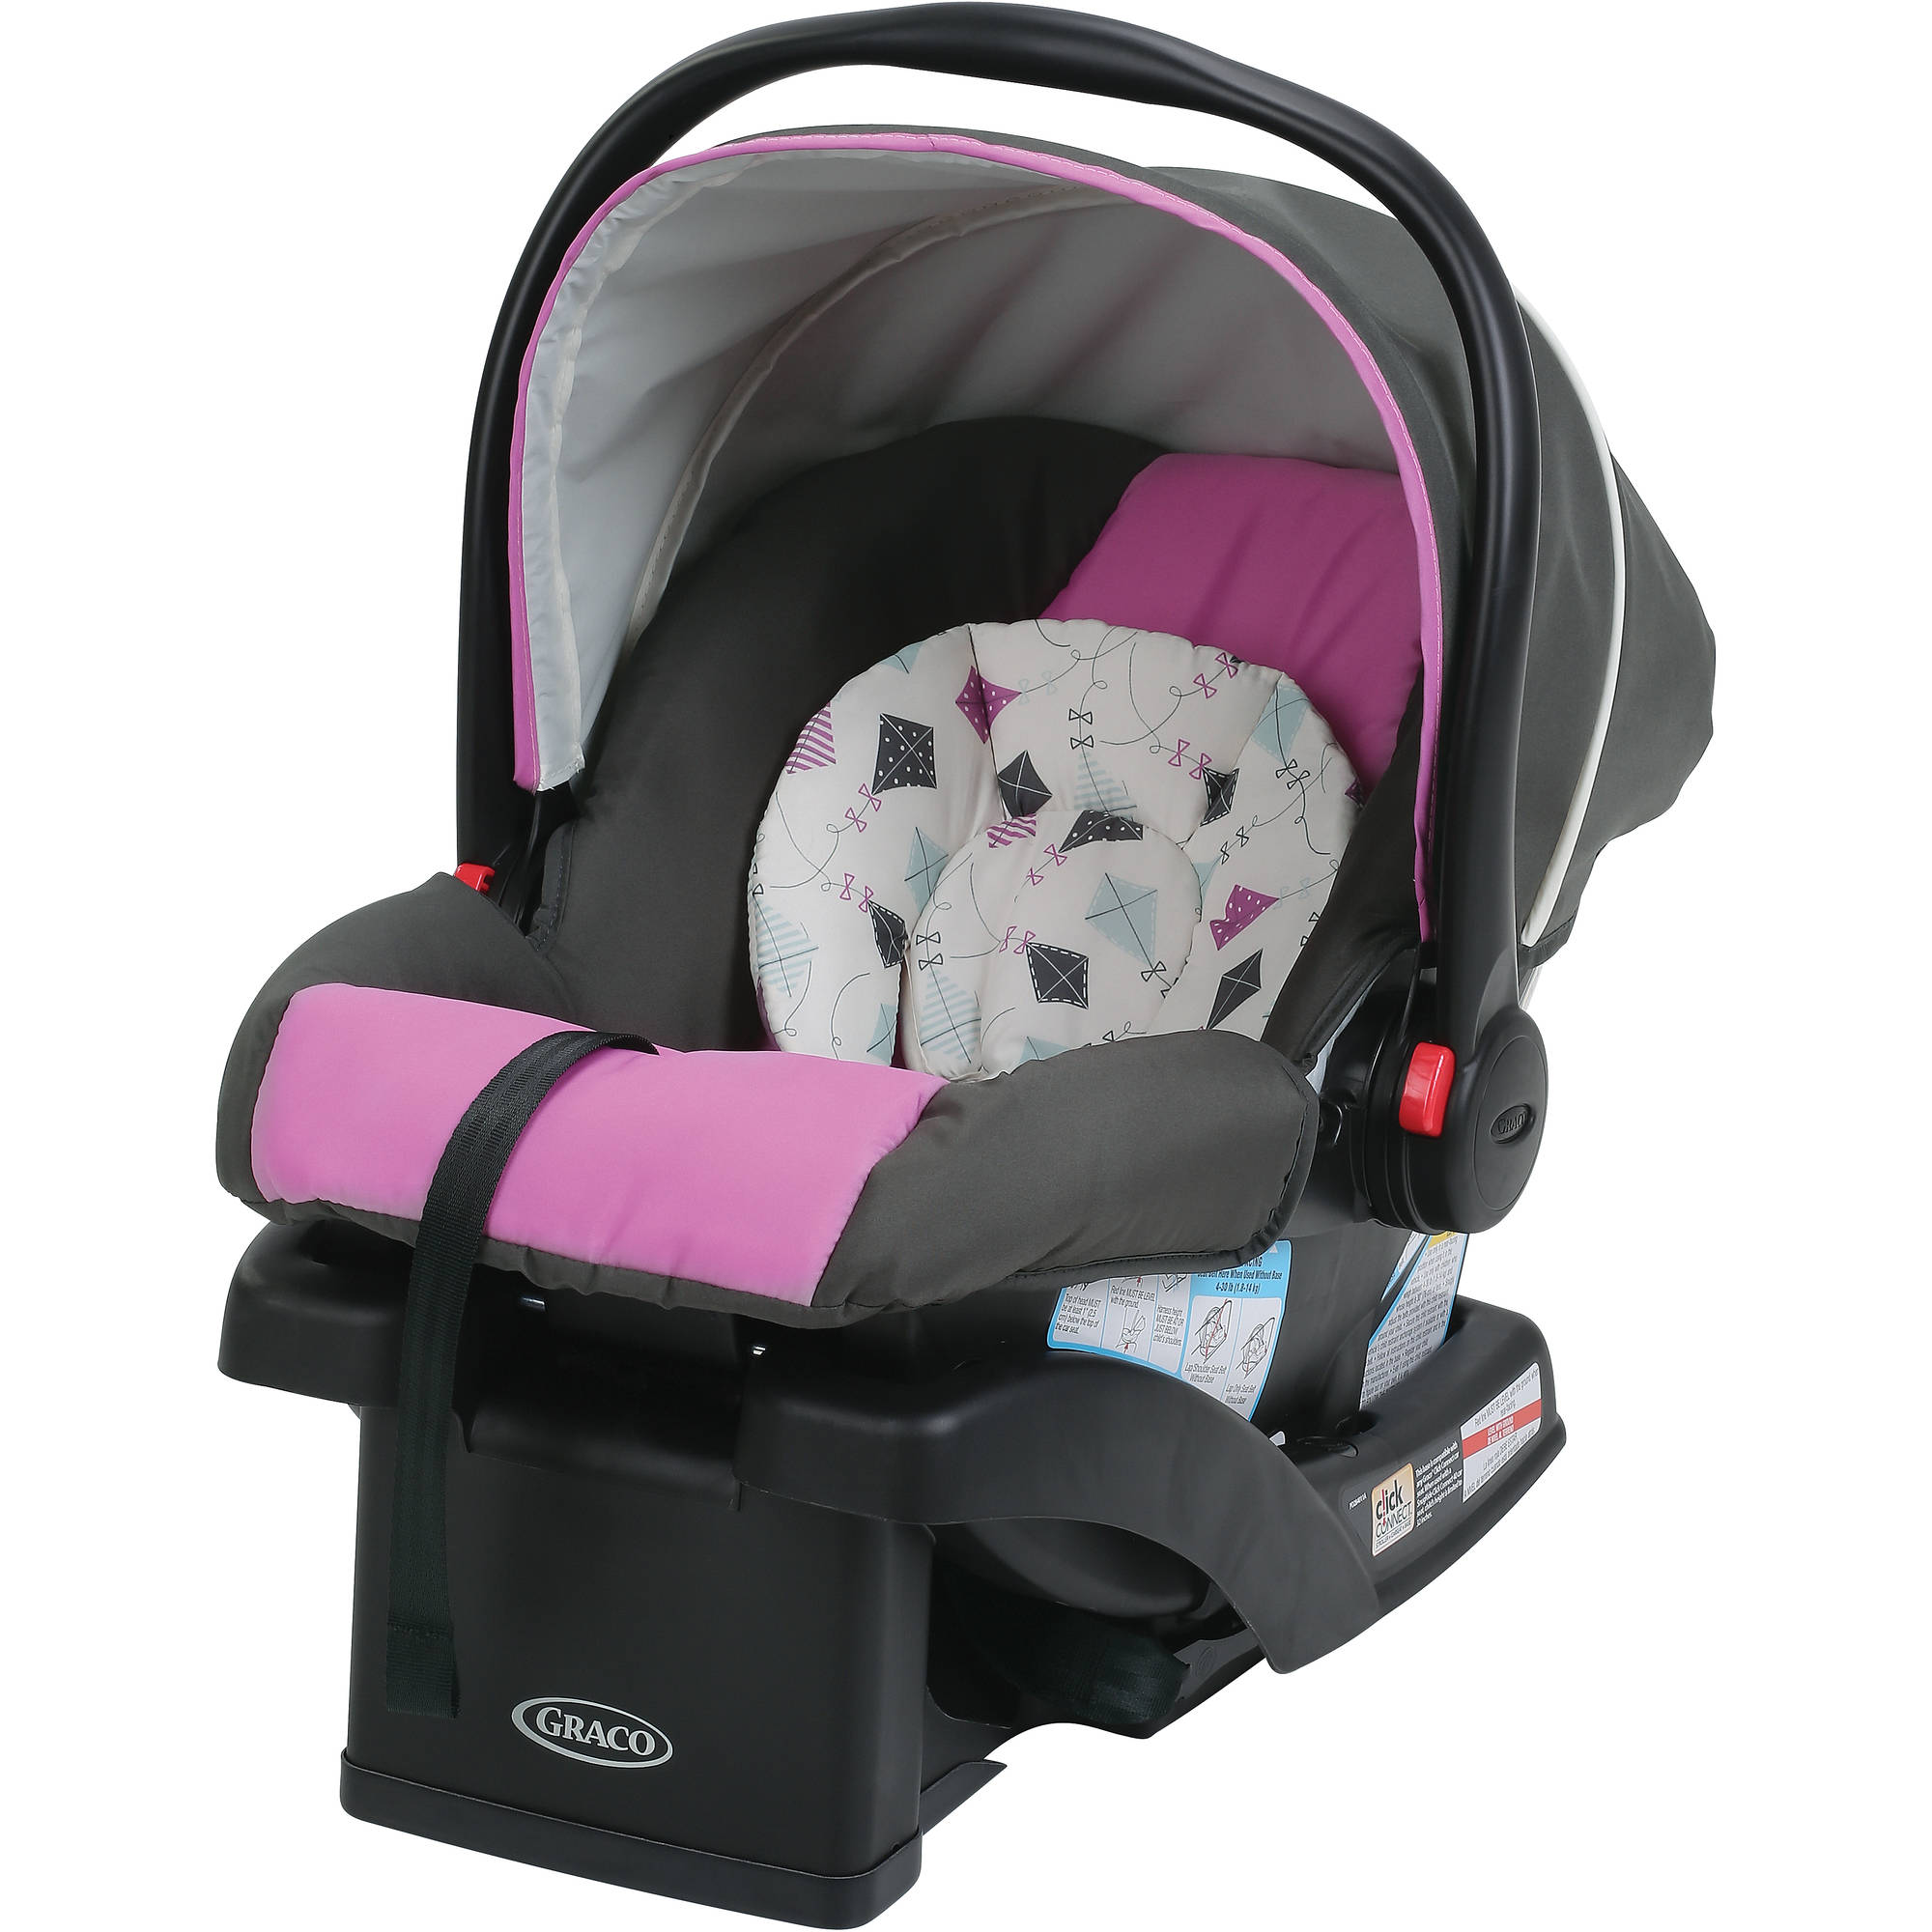 Graco SnugRide 30 Click Connect Infant Car Seat with Front Adjust, Kyte